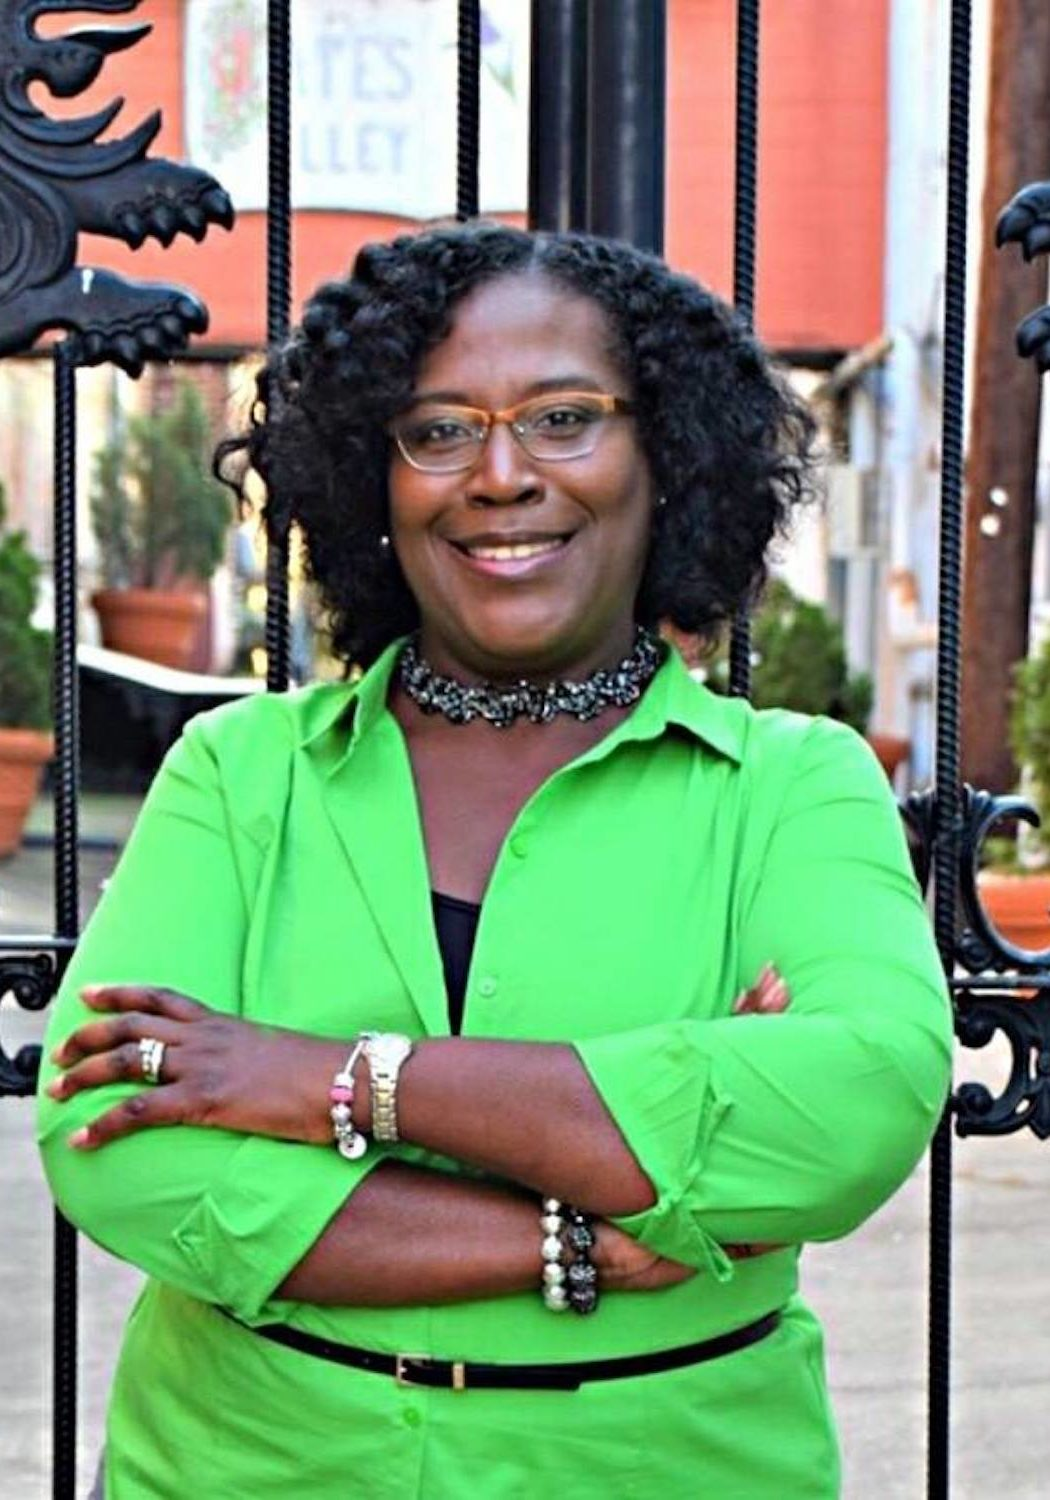 Wendy Bryant Sellars, Willoughby Avenue, The Five Fifths, KOLUMN Magazine, KOLUMN, African American Politics, Blacks in Politics, Black Vote, Vote Black